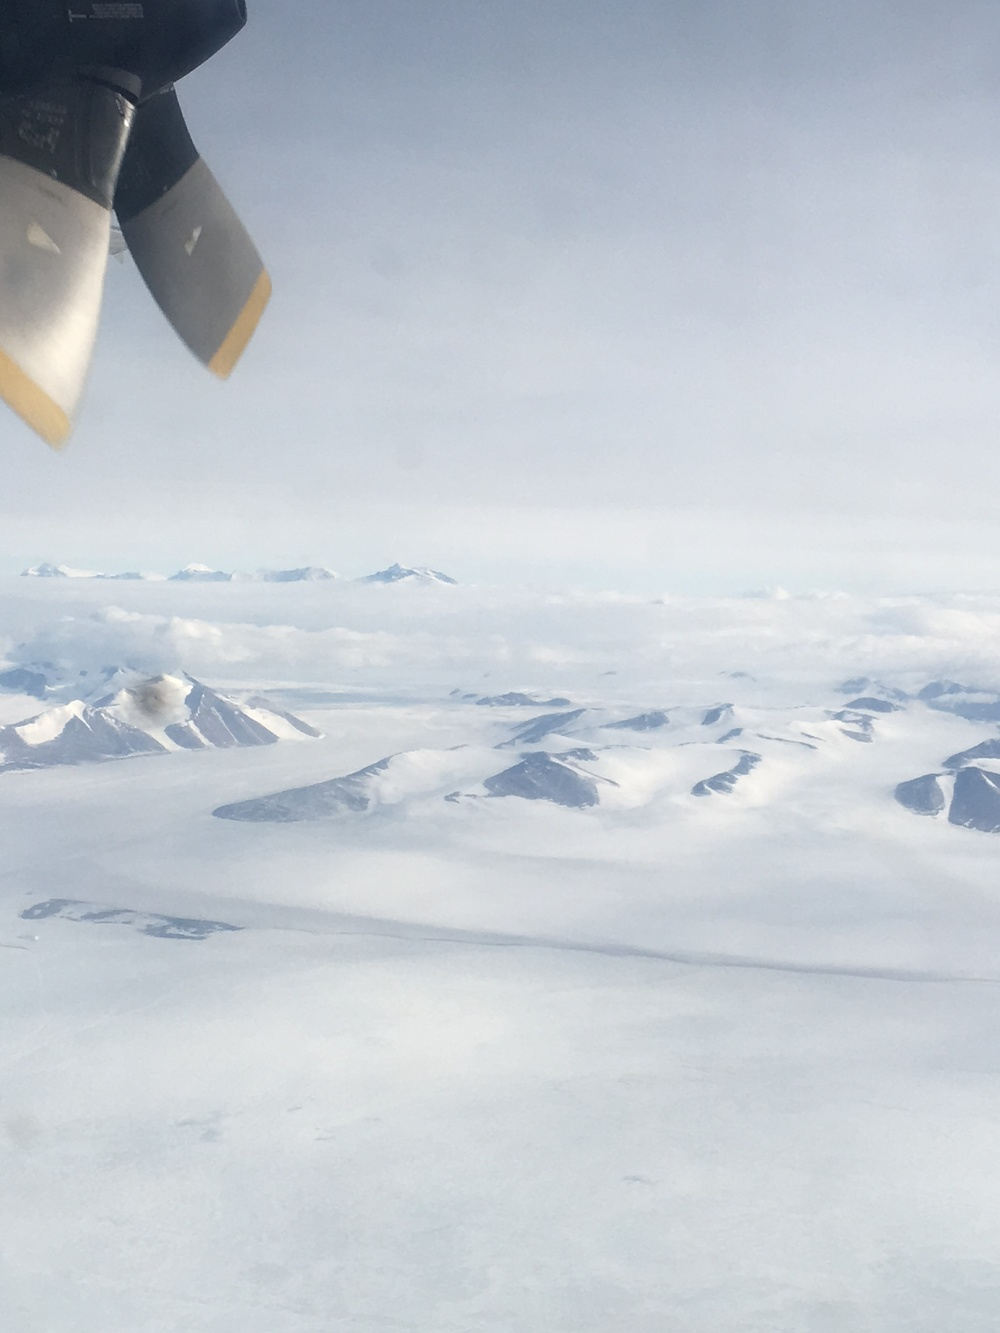 View out the porthole of the L-100 as we fly out of McMurdo.  Goodbye Antarctica until next year!